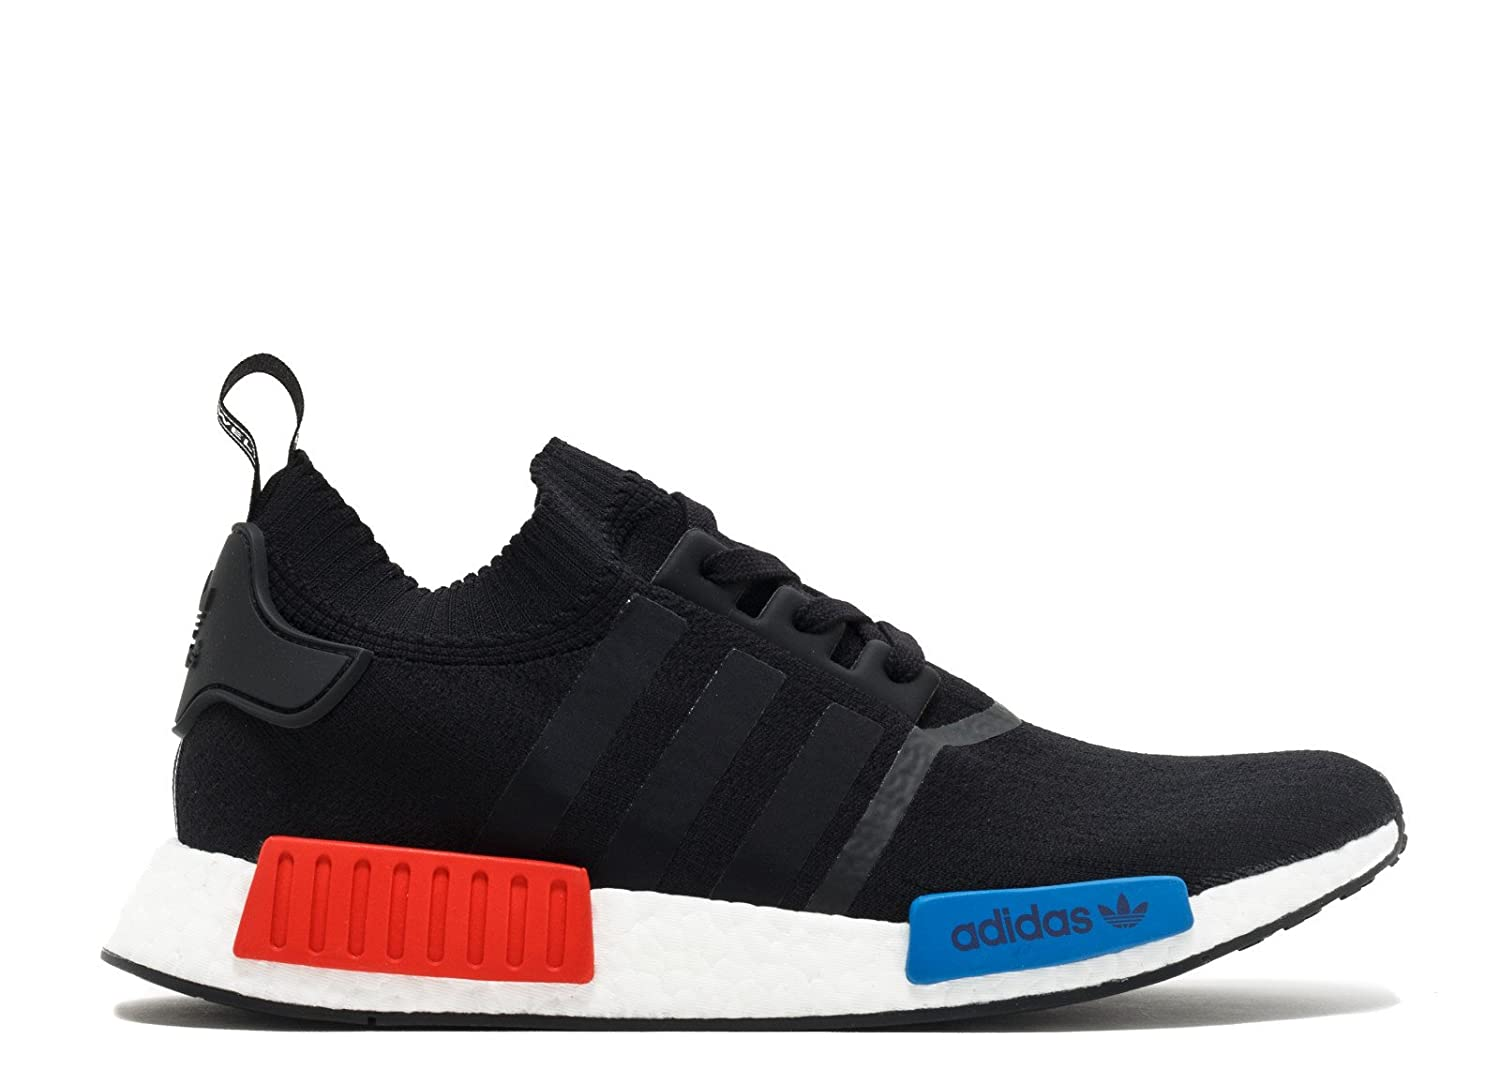 info for 278da 8a9b9 Adidas NMD Runner PK